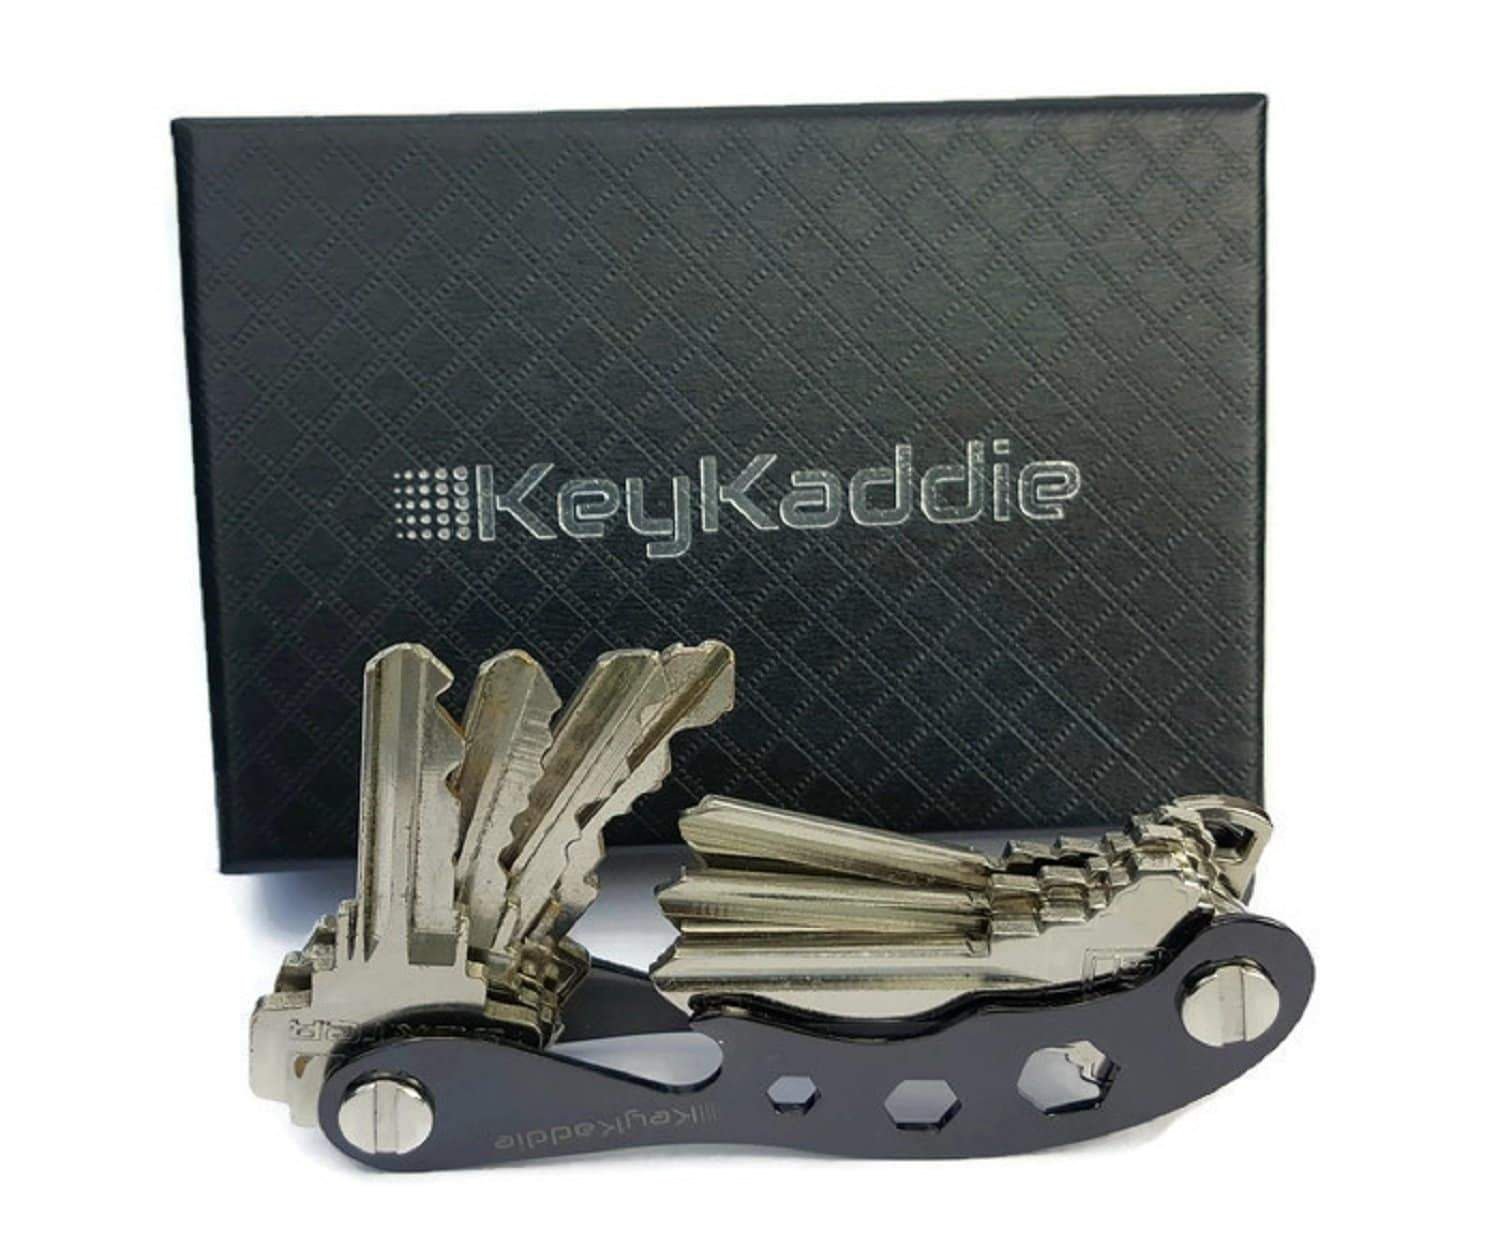 Save key holder compact key organizer multitool keychain and bottle opener including durable zinc frame black anti loosening spacers screws by keykaddie